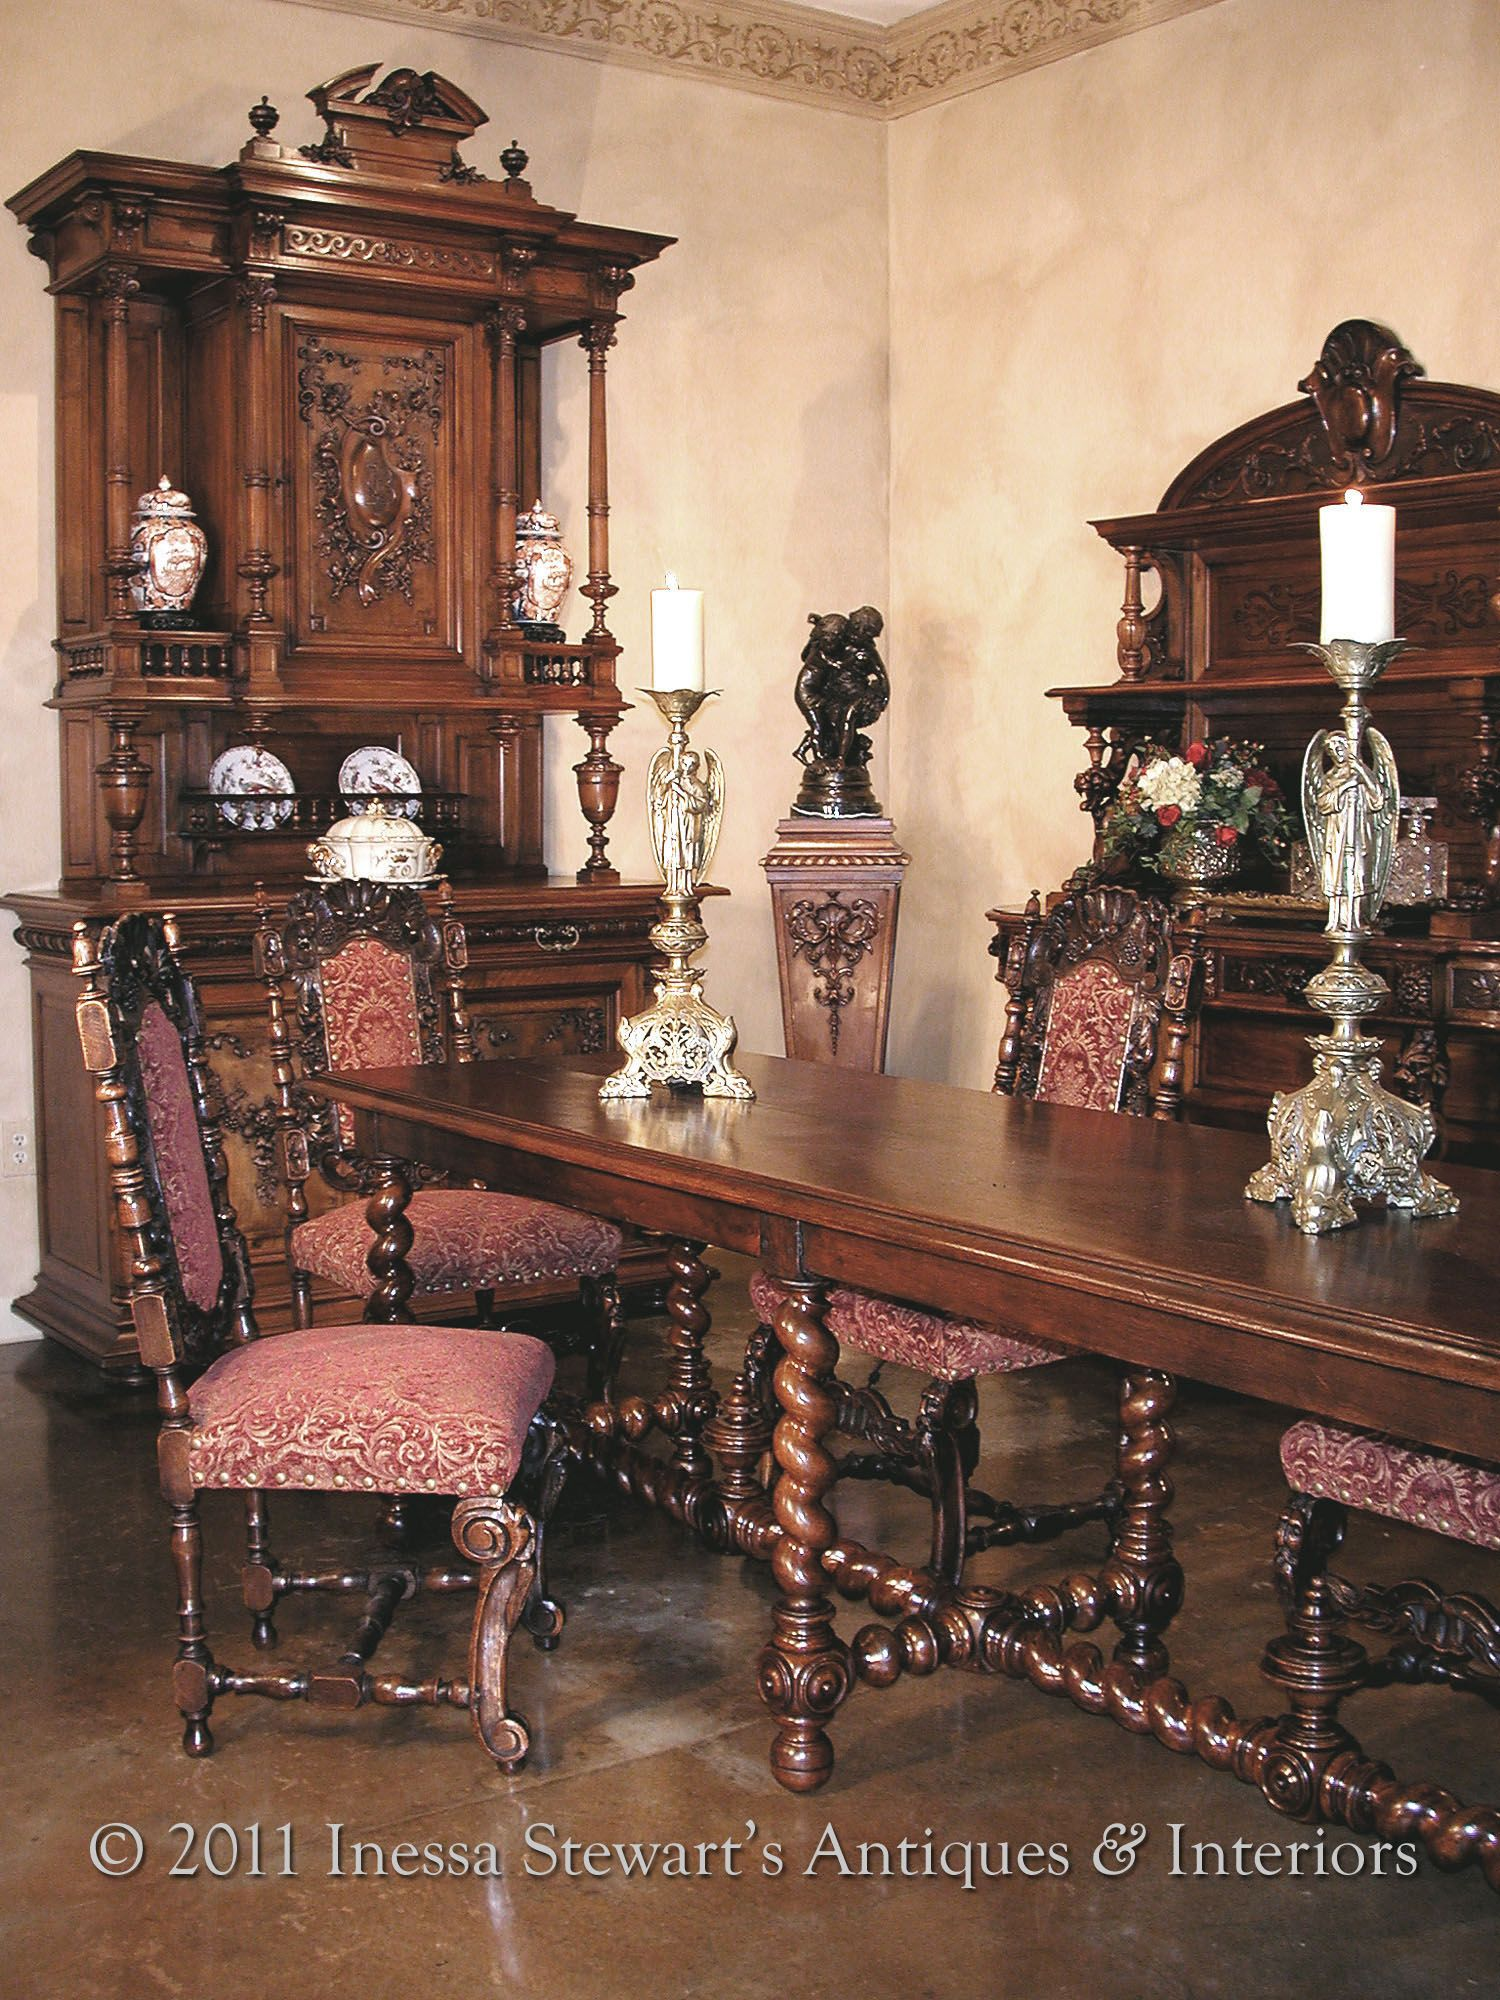 Gothic Style Bedroom Furniture Antique Renaissance Style Dining Room To Most Of Us Antique